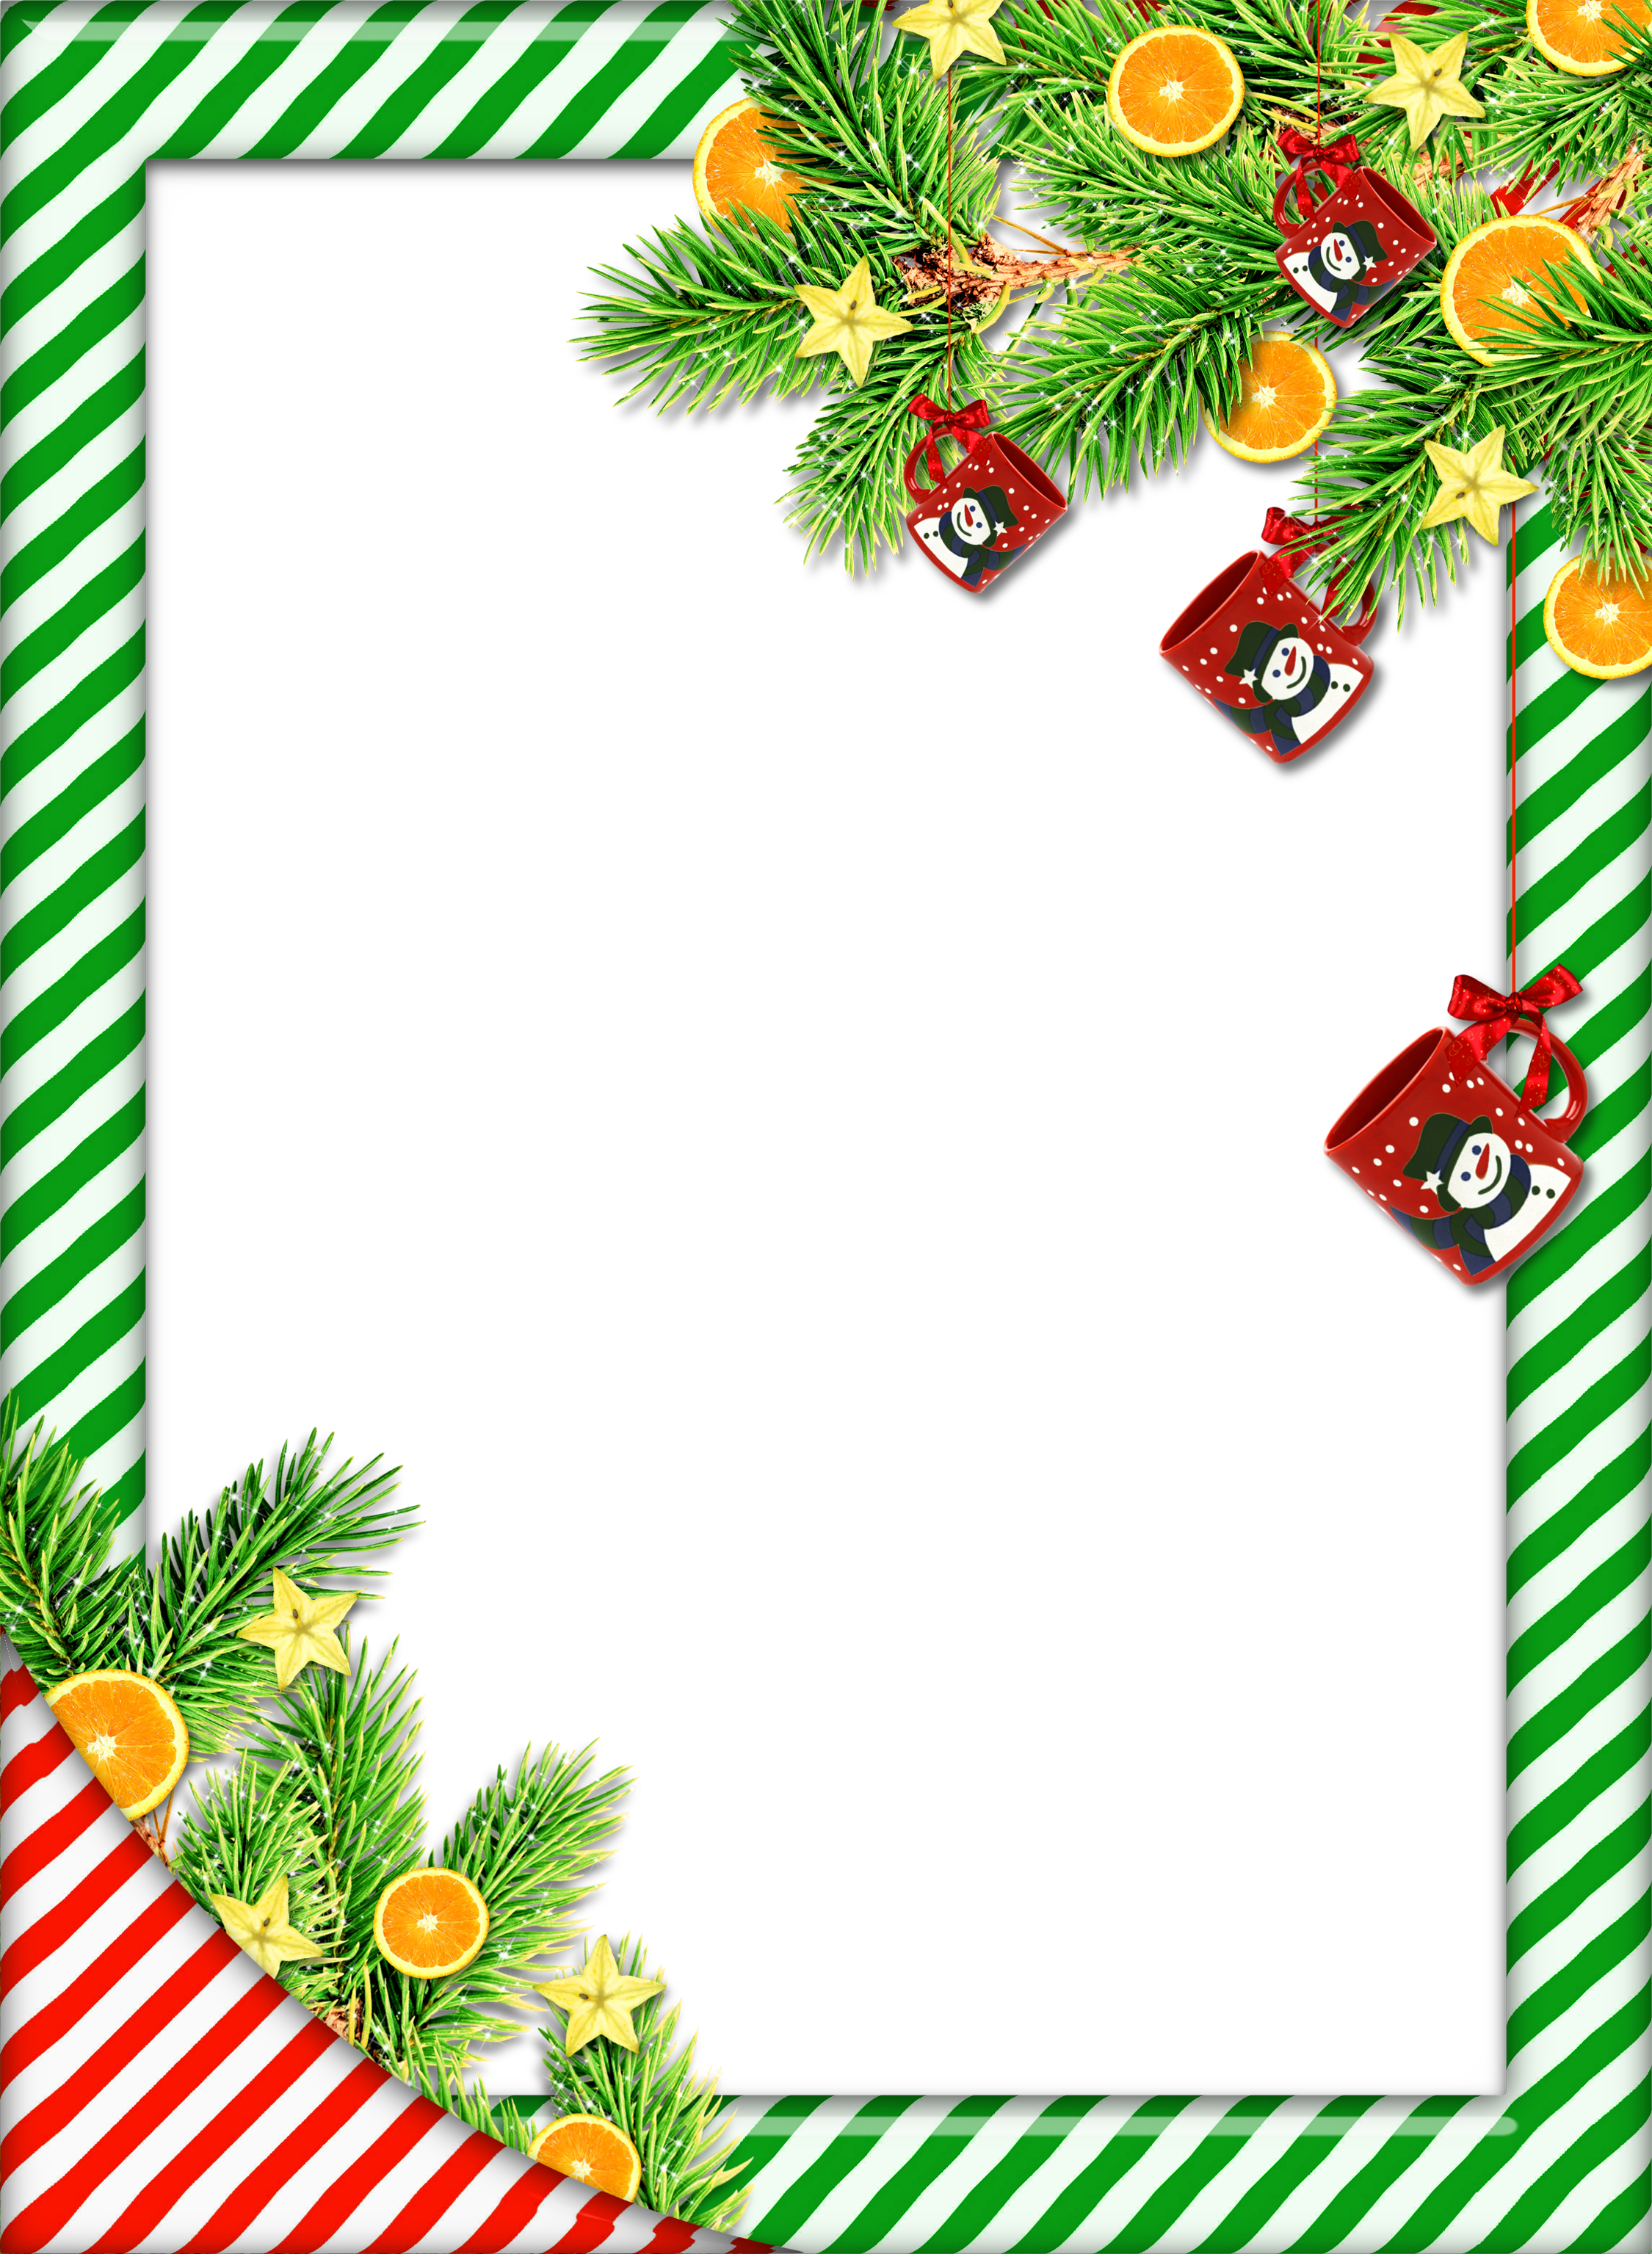 Christmas mint png photo. Frames clipart holiday